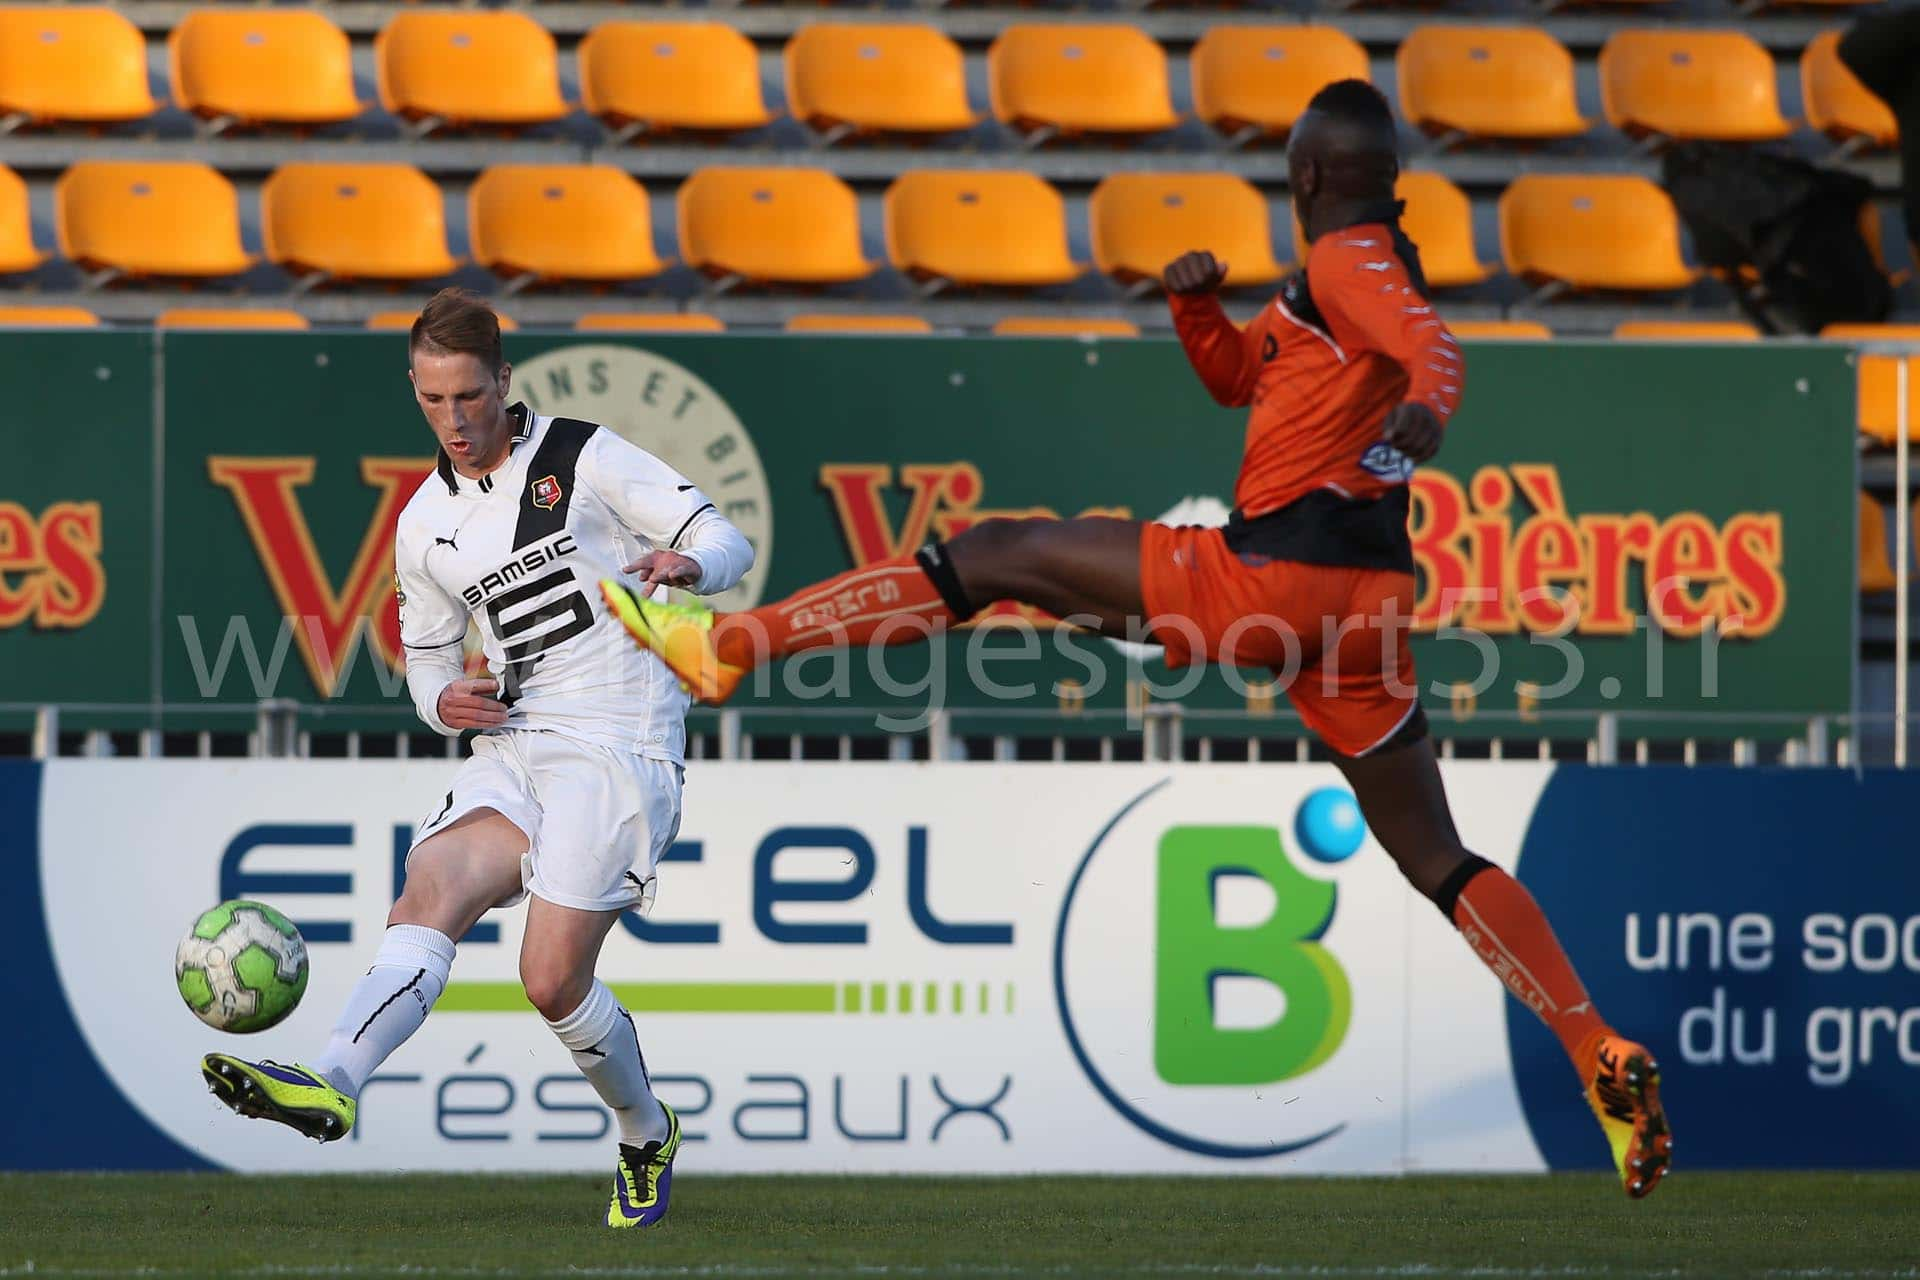 NG-CFA2-1314-J19-Laval-Rennes_4